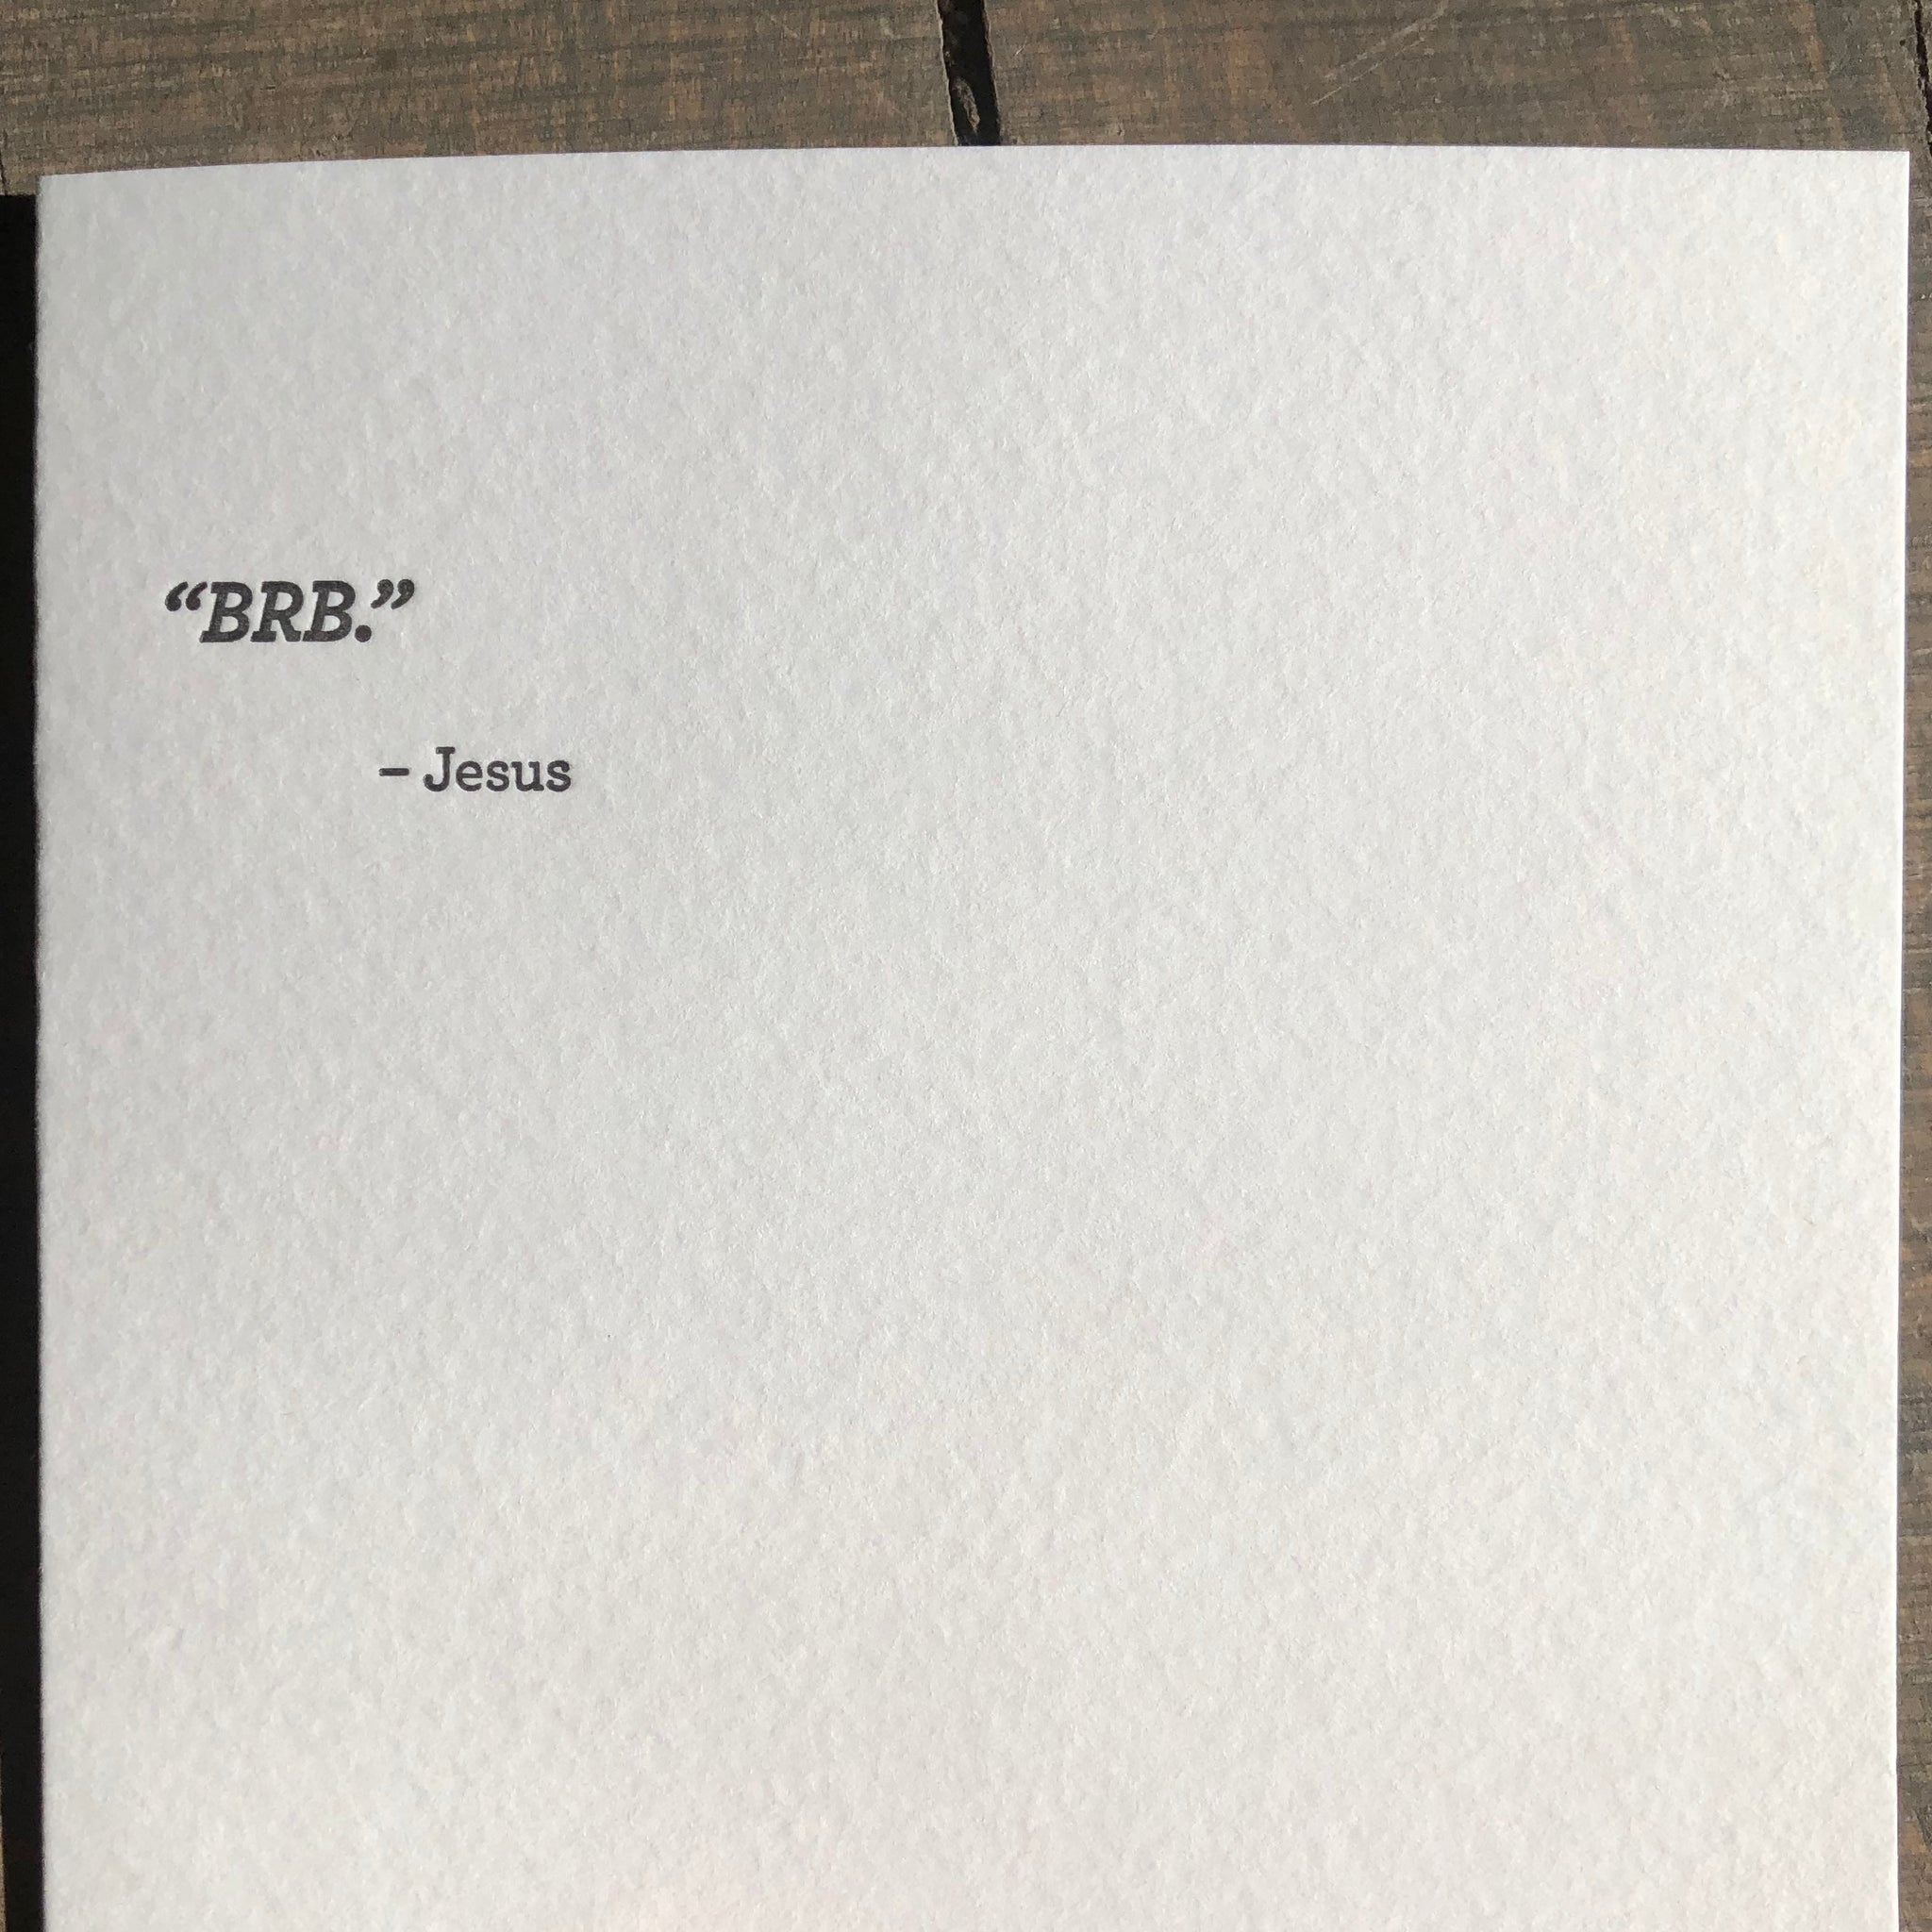 Mild Confessions: BRB Letterpress Greeting Card by Sapling Press - Upstate MN